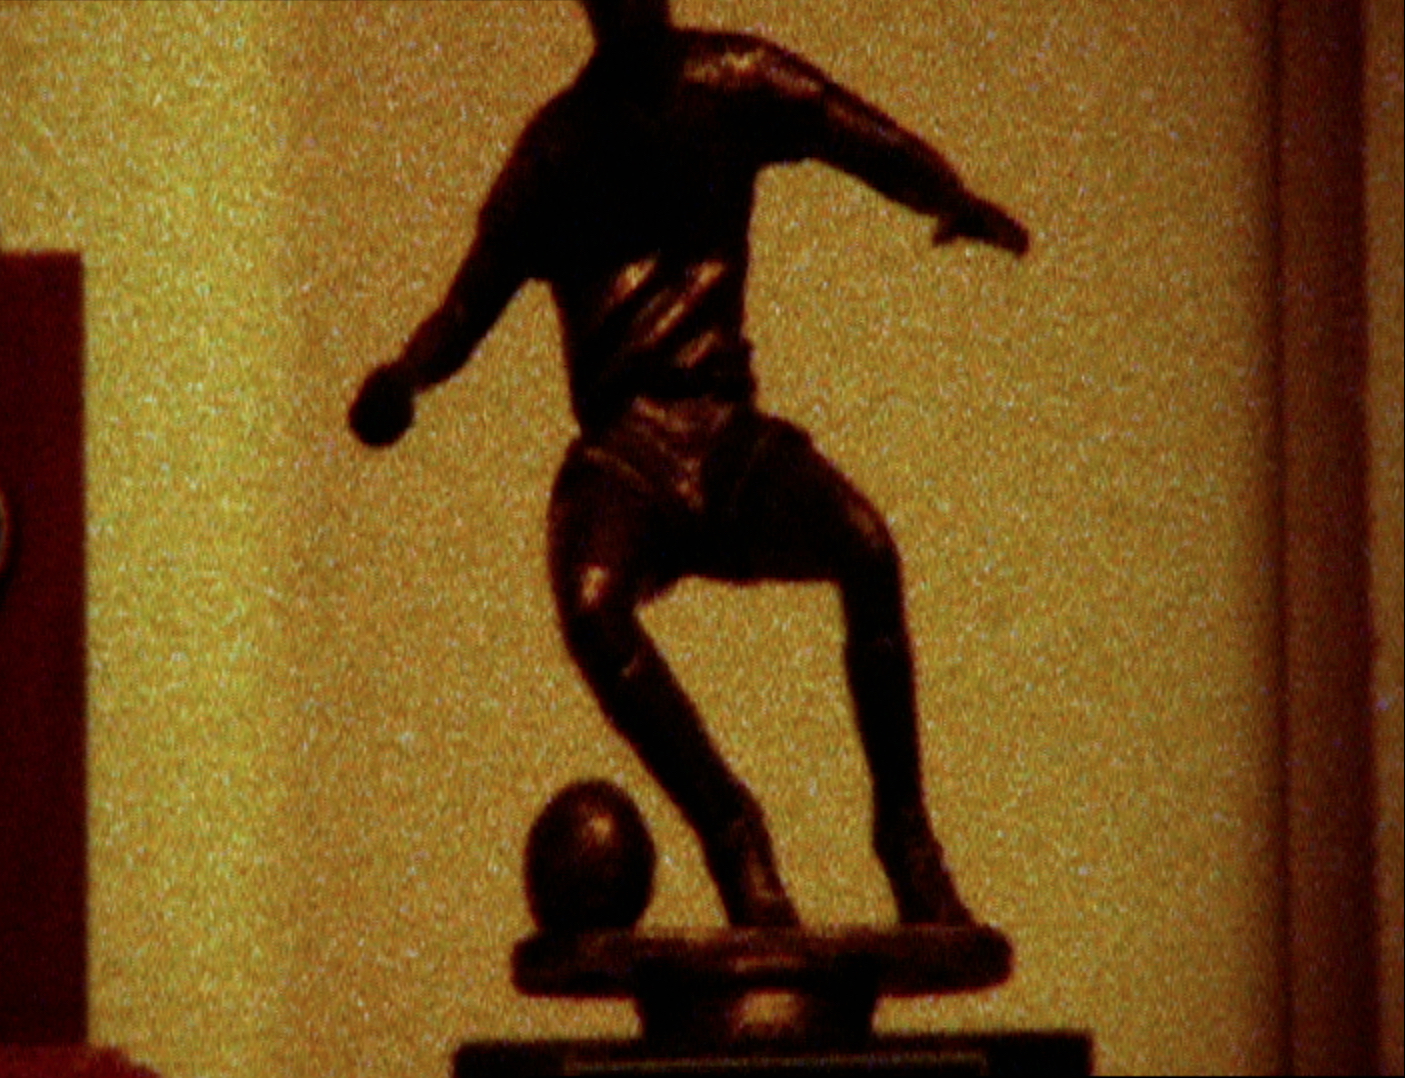 The image is a grainy film still from the Genome Chronicles by John Akomfrah showing a cropped image of a trophy on a yellow background. The trophy has a representation of a football player kicking a ball on top of it, it is cropped so that the head of the football player is not visible.